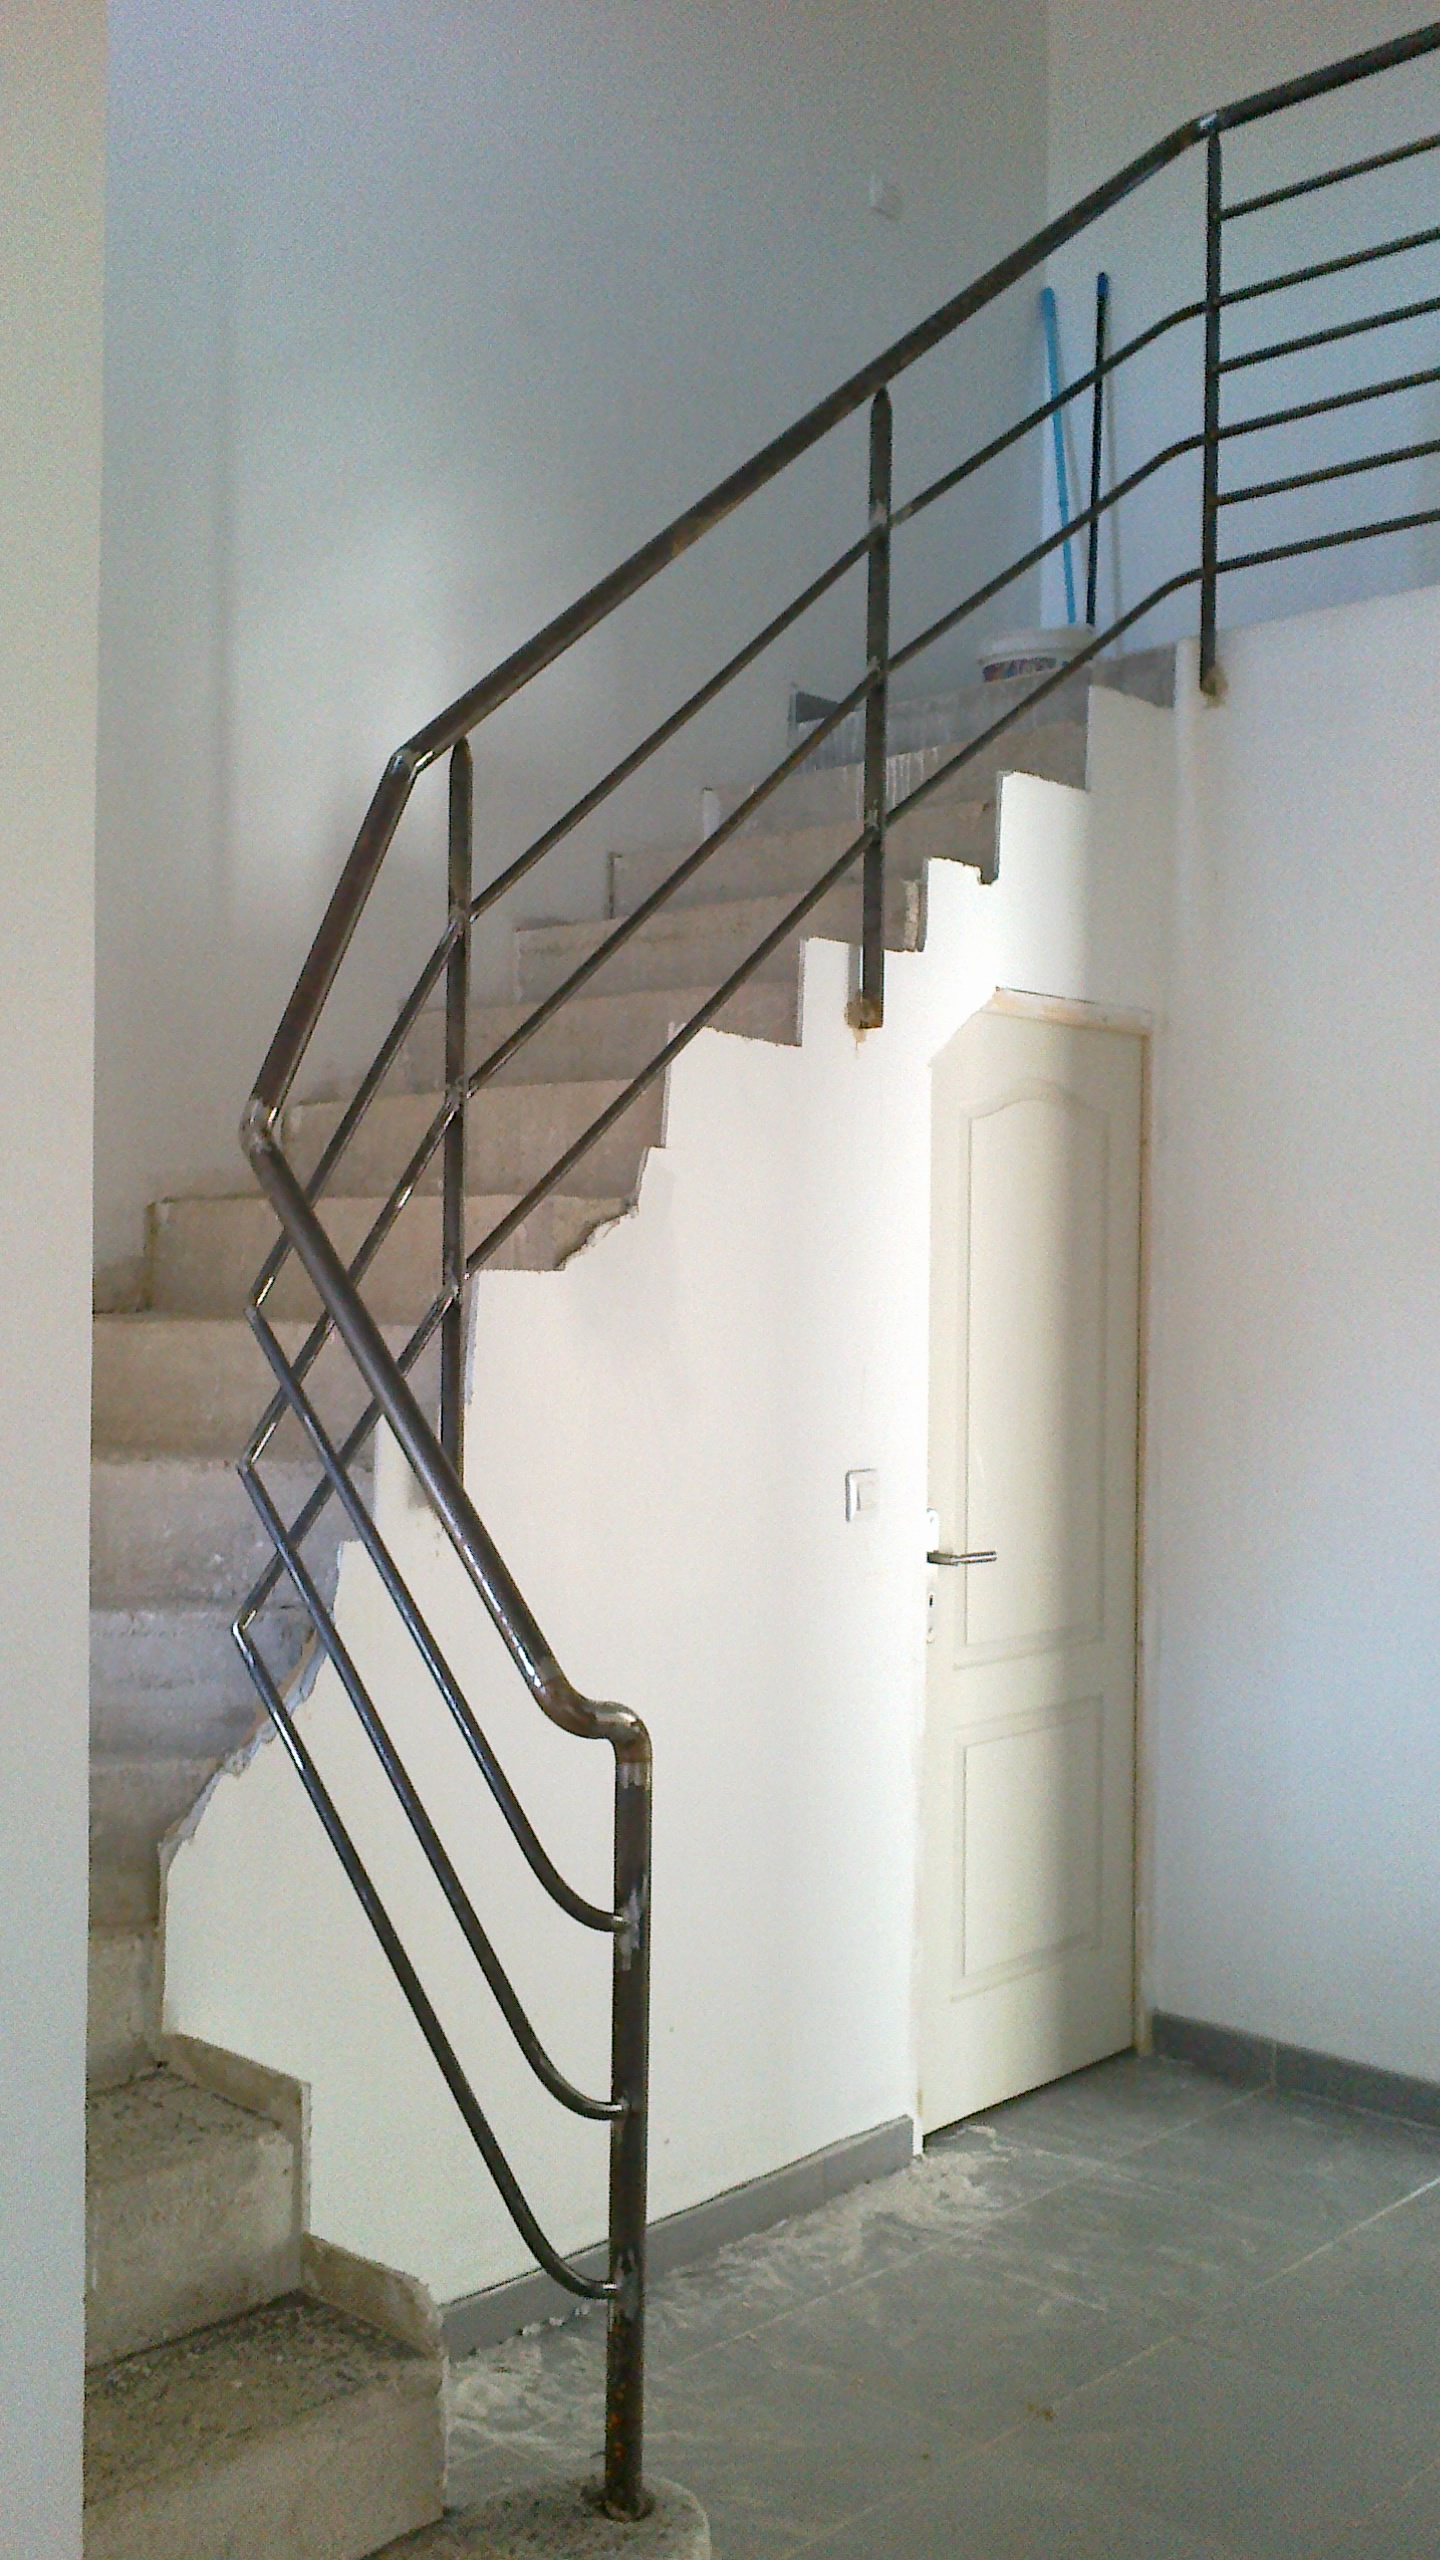 Rampe escaliers moderne fer forg faufer for Photos escalier interieur moderne